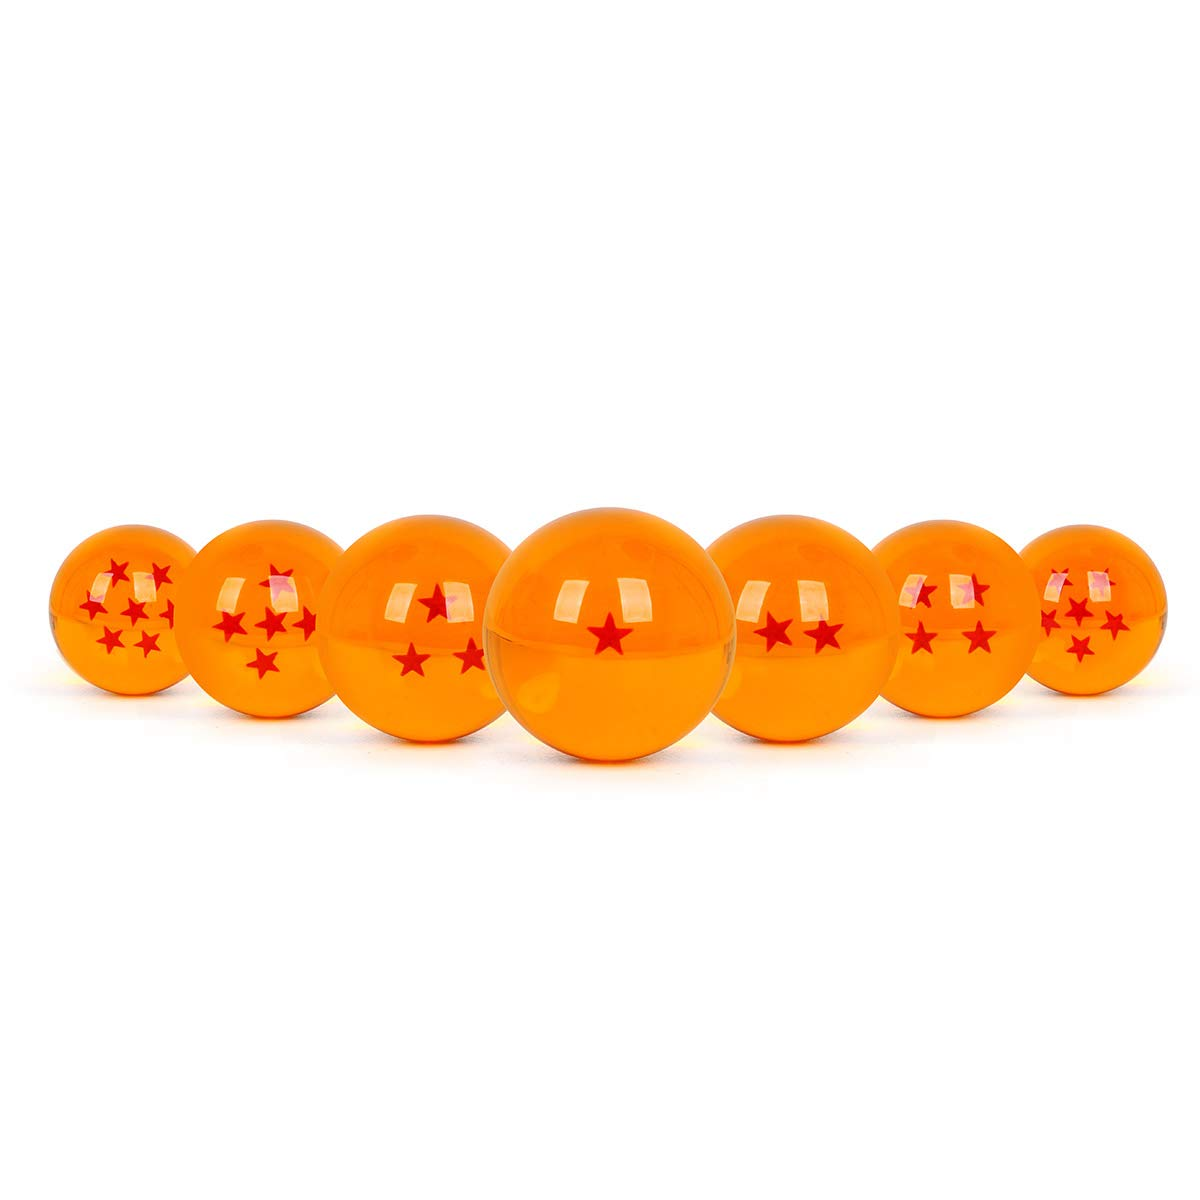 WeizhaonanCos Unisex Acrylic Resin Transparent Stars Balls Glass Ball Dragon Ball Cosplay Props Kids Play Toy Gift Set of 7pcs 43mm/1.7 in in Diameter (Orange) by WeizhaonanCos (Image #3)